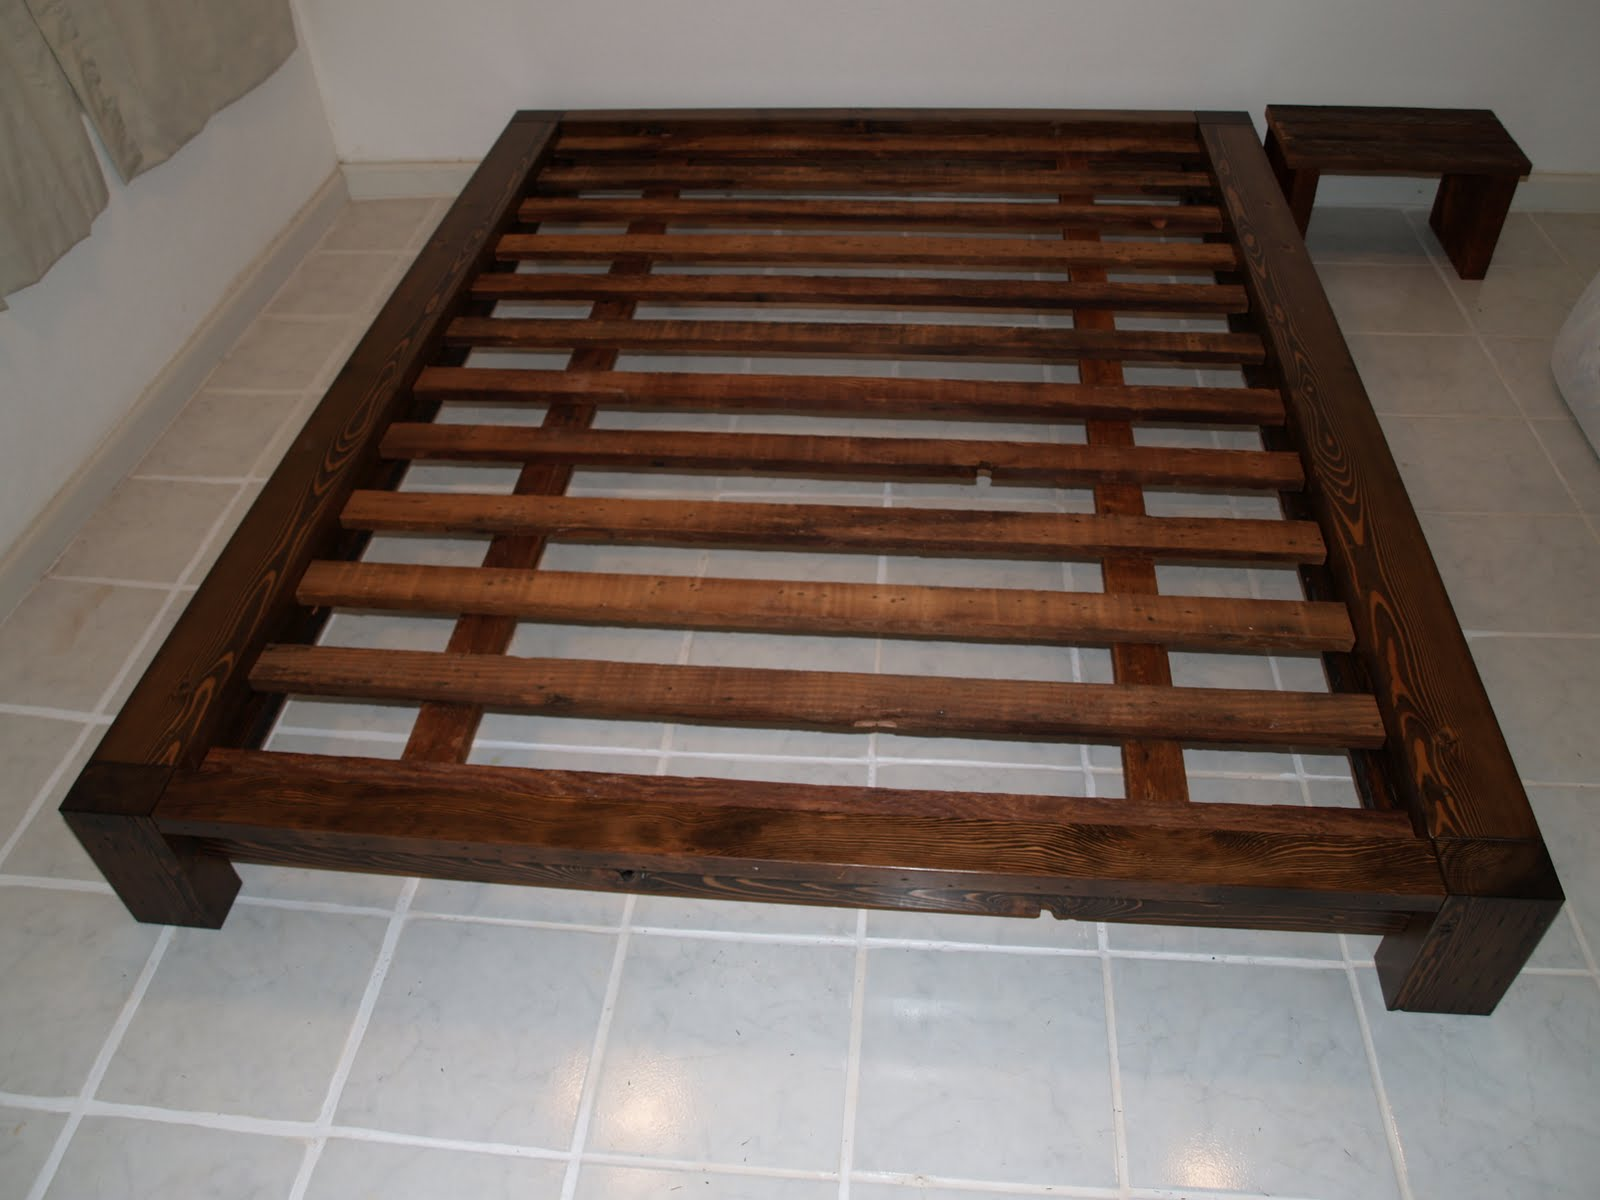 Forward thinking furniture queen size bed frame for Queen size bed frame